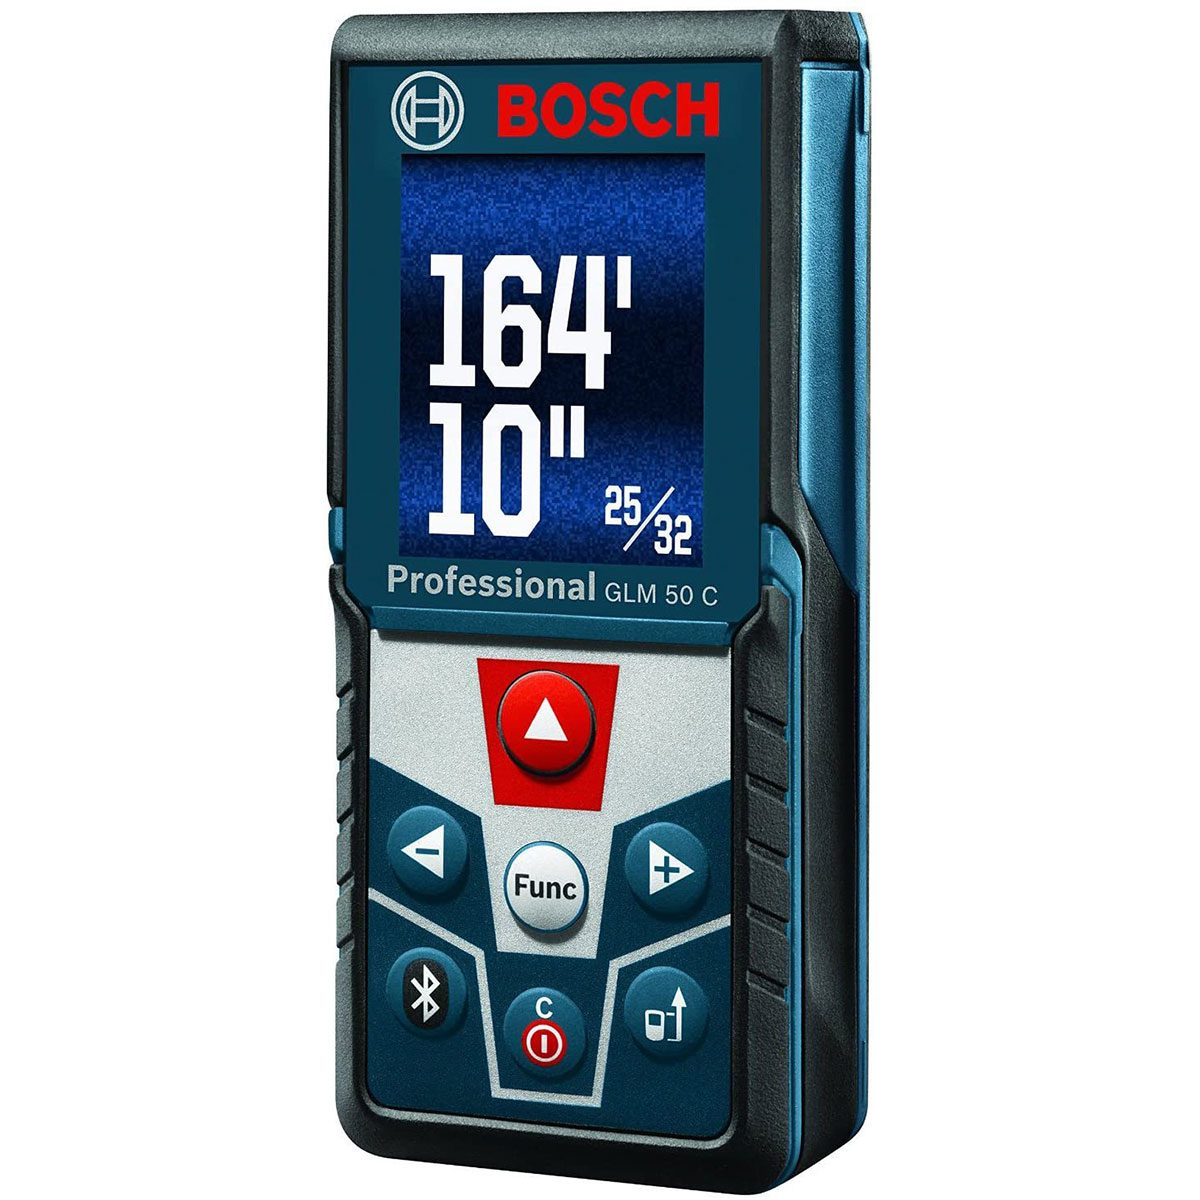 Bosch bluetooth distance measure